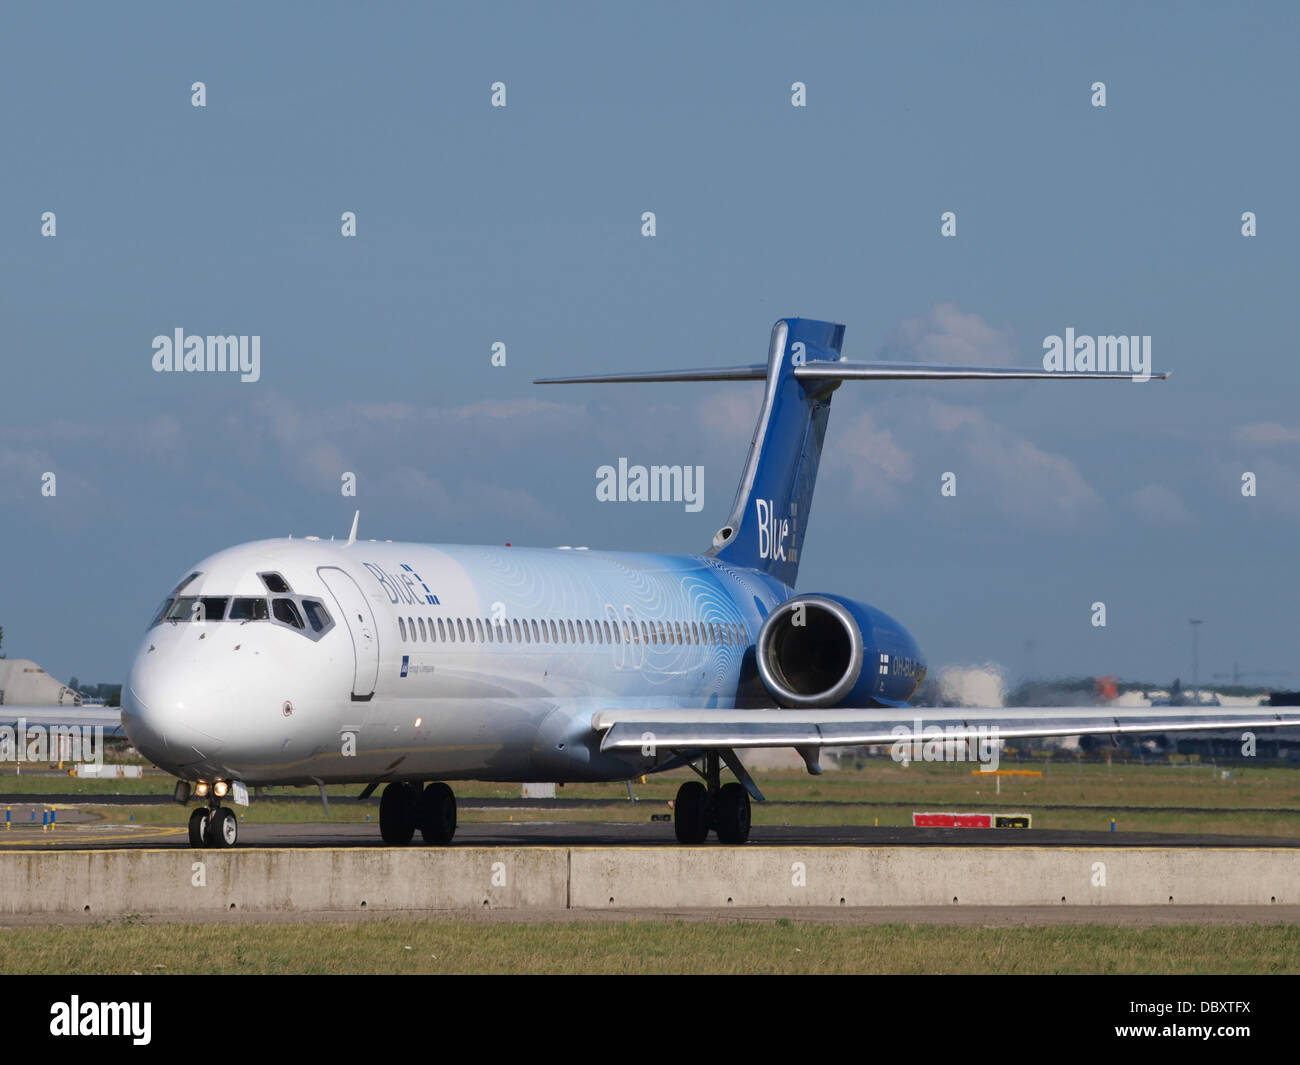 OH-BLJ Blue1 Boeing 717-23S - cn 55065 taxiing 19july2013 4 Stock Photo